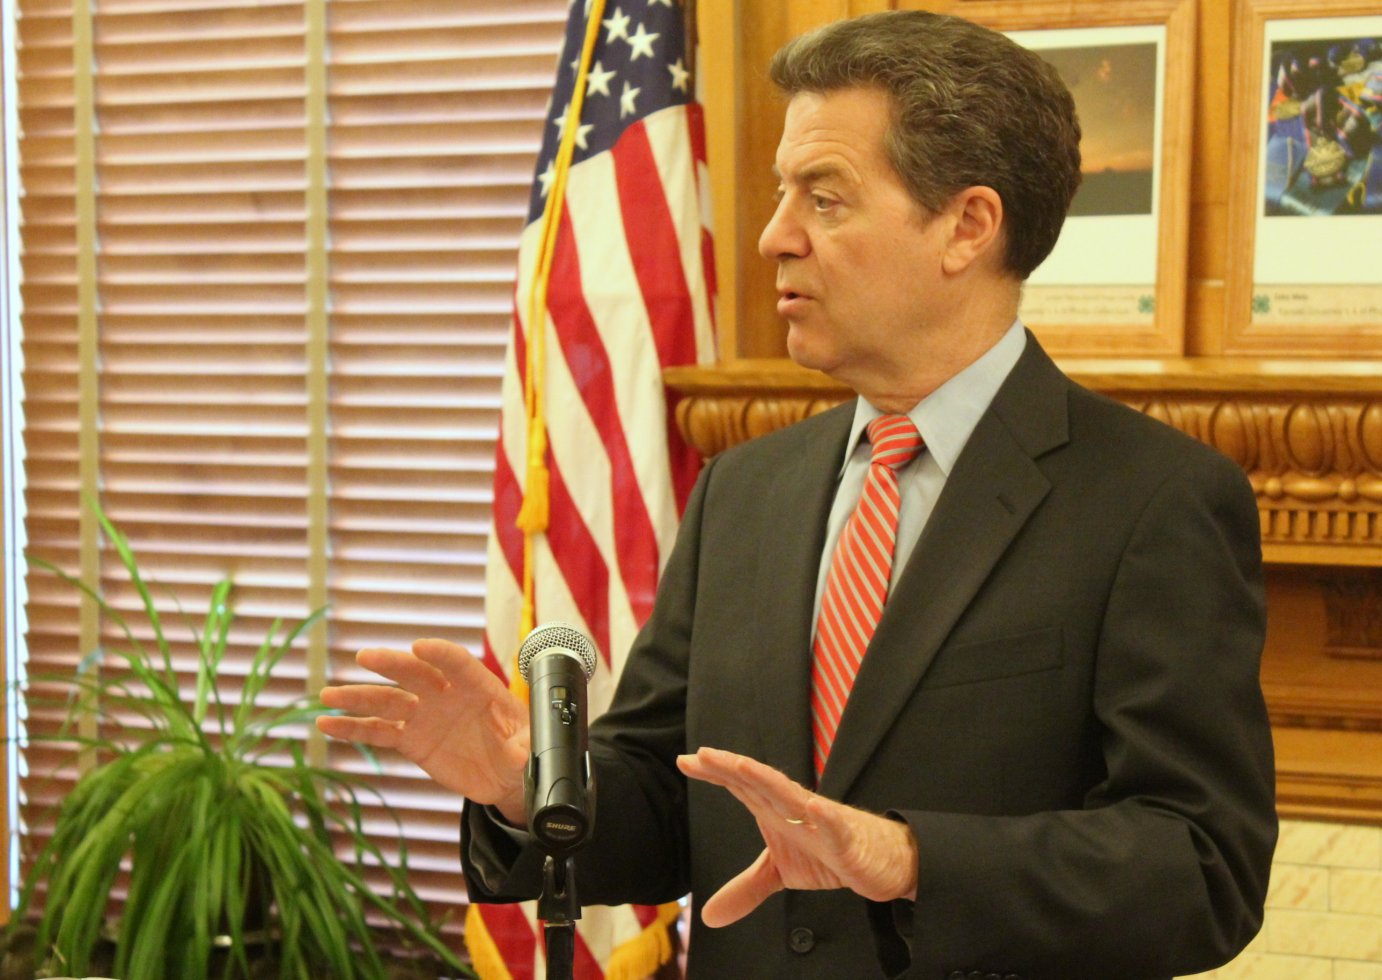 Brownback during a press conference last month. (Photo by Stephen Koranda)